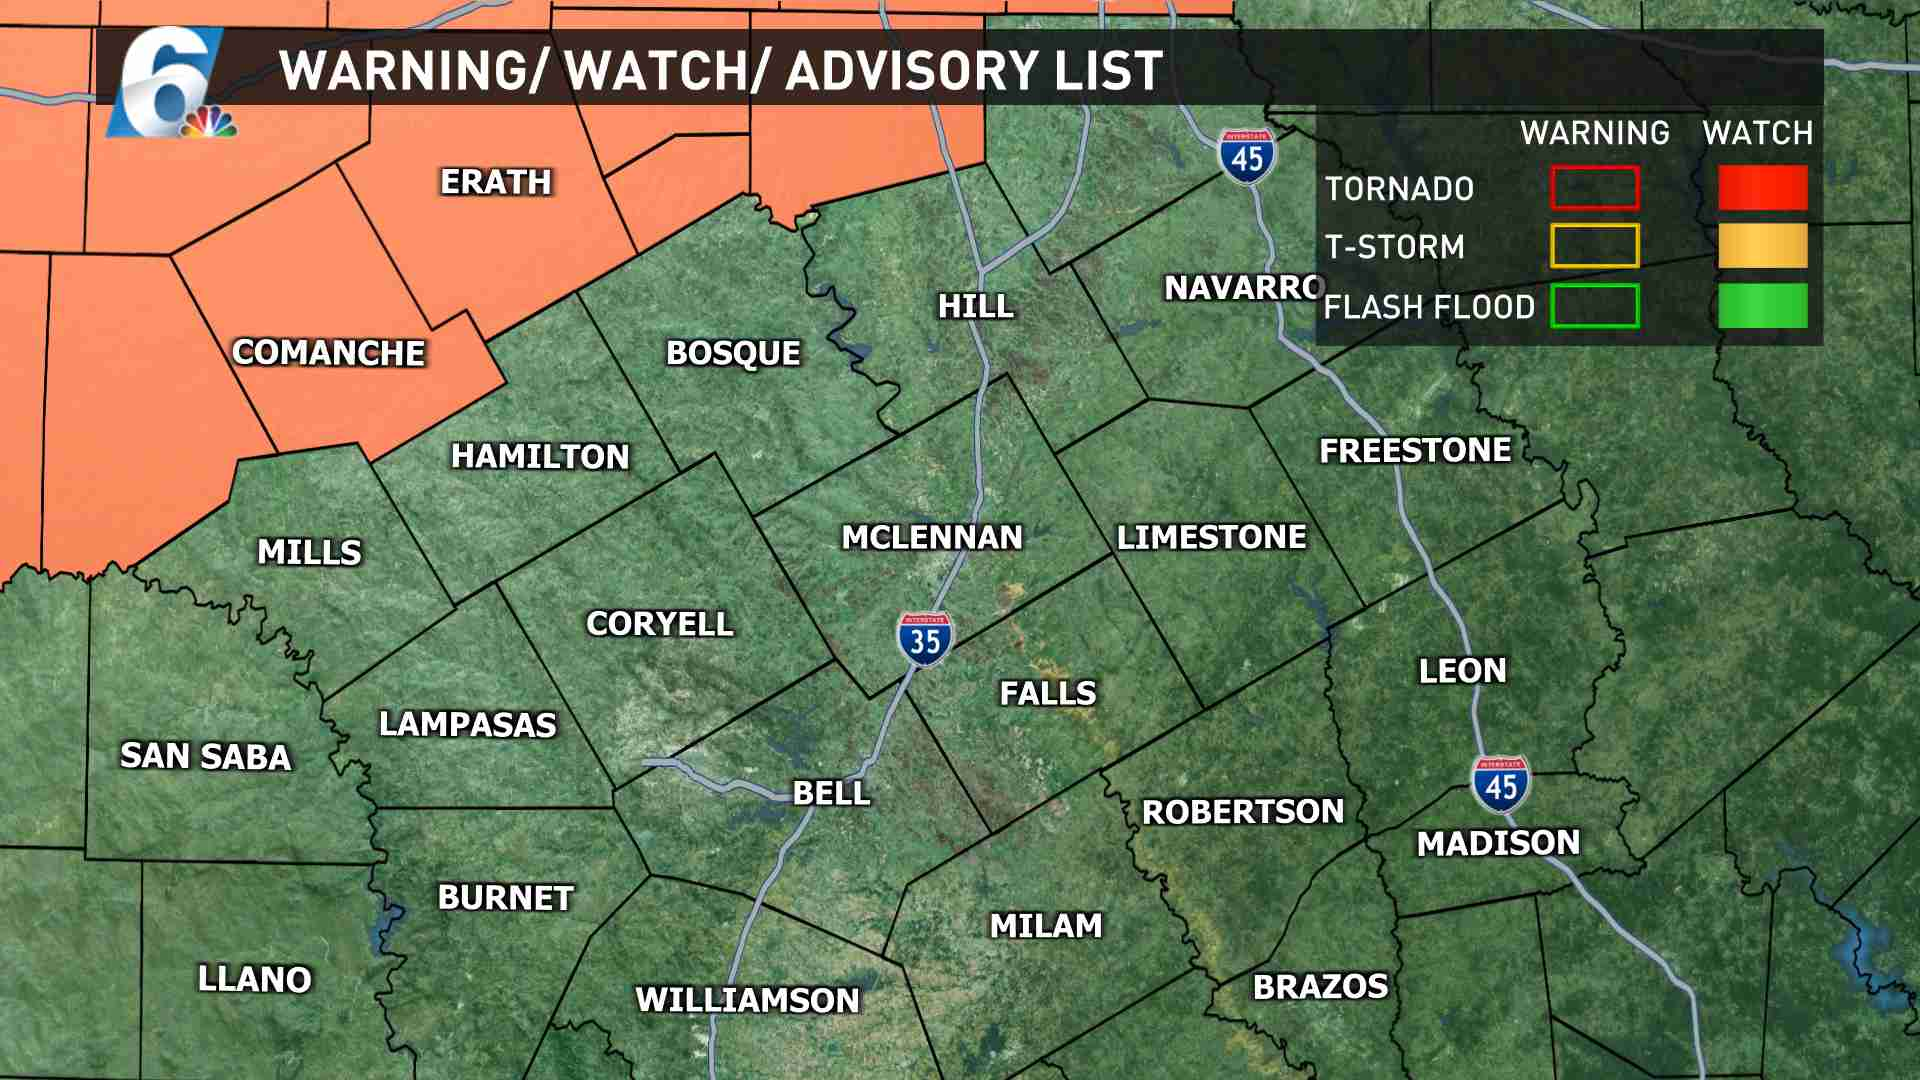 Watches-Warnings-Advisories